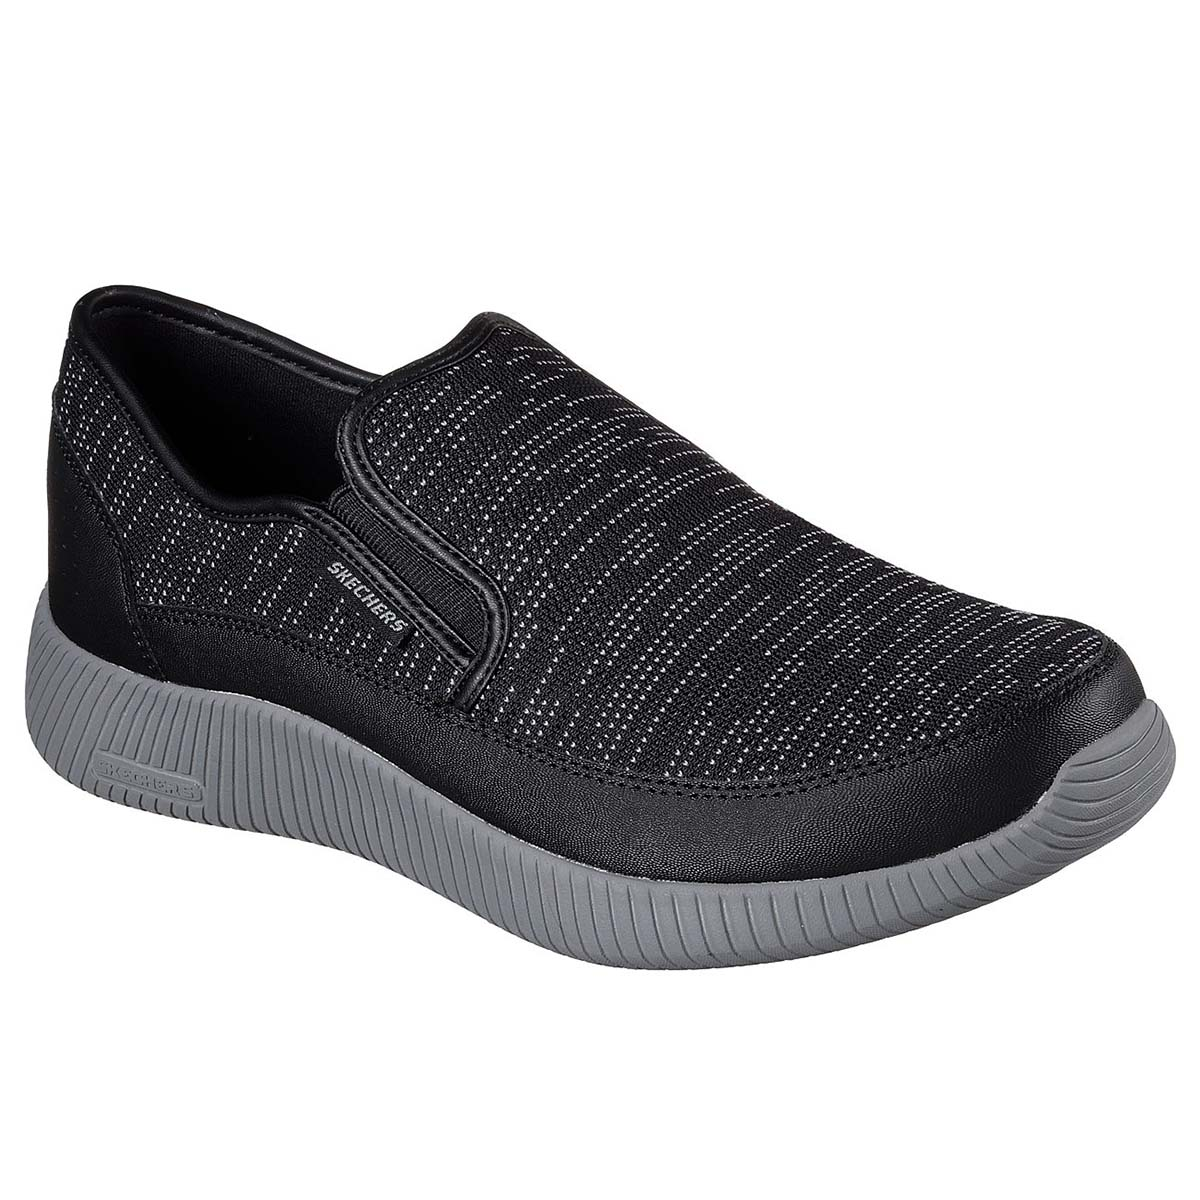 top-rated authentic half off best sell Buy Skechers Air Cooled Memory Foam Mens Shoes (Black ...